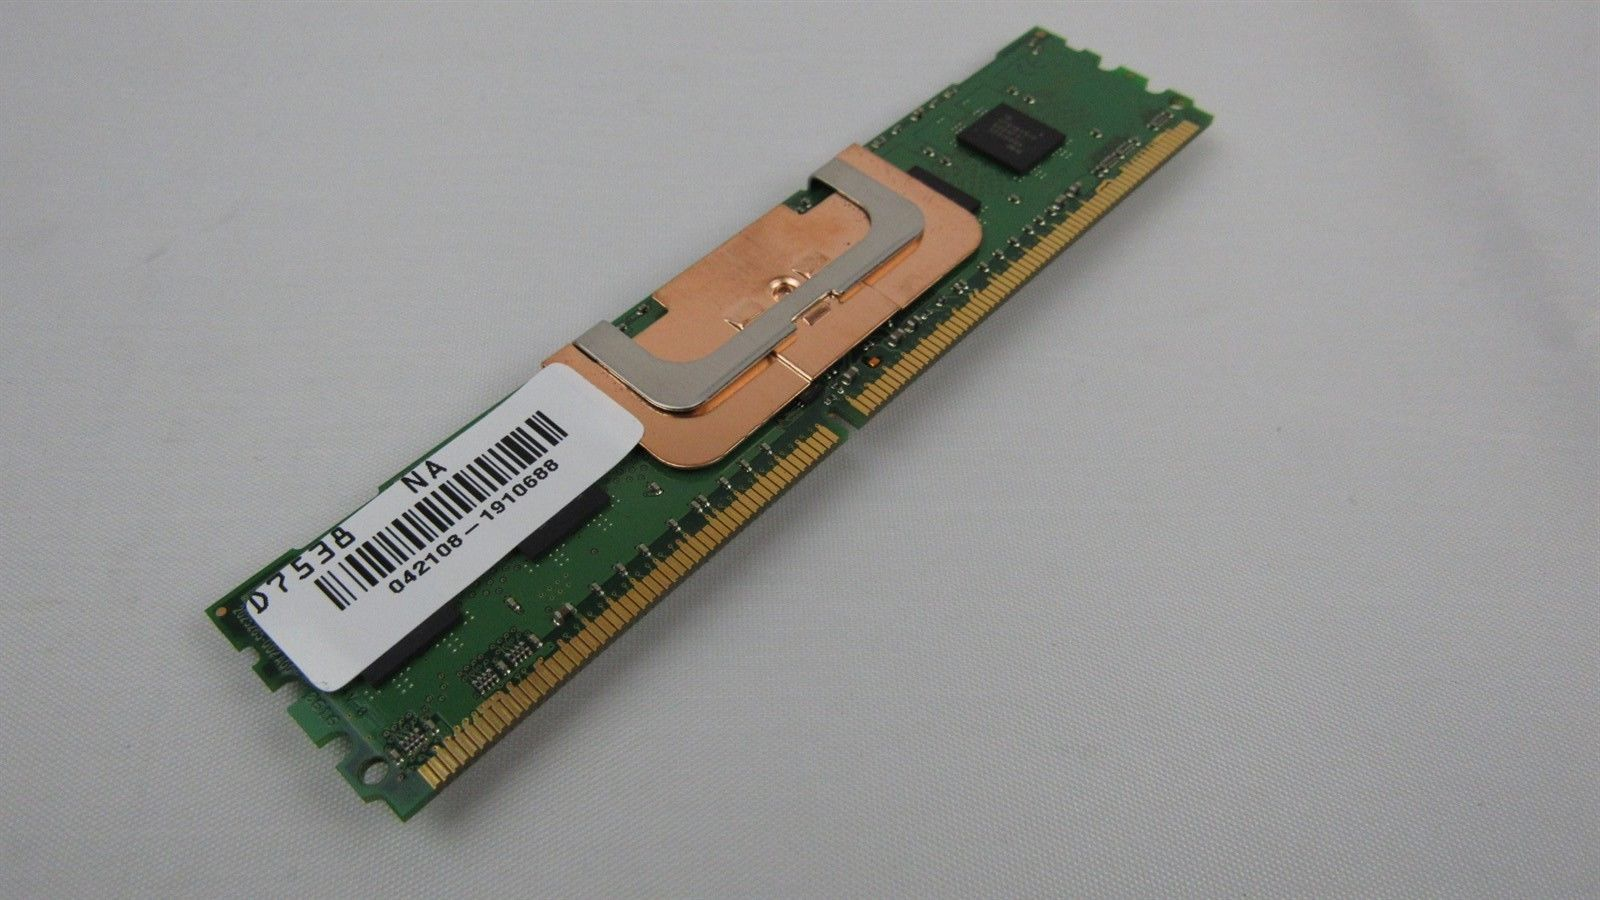 Dell 512MB PC2-4200 DDR2-533MHz non-ECC CL4 240-Pin DIMM Memory D7538 0D7538